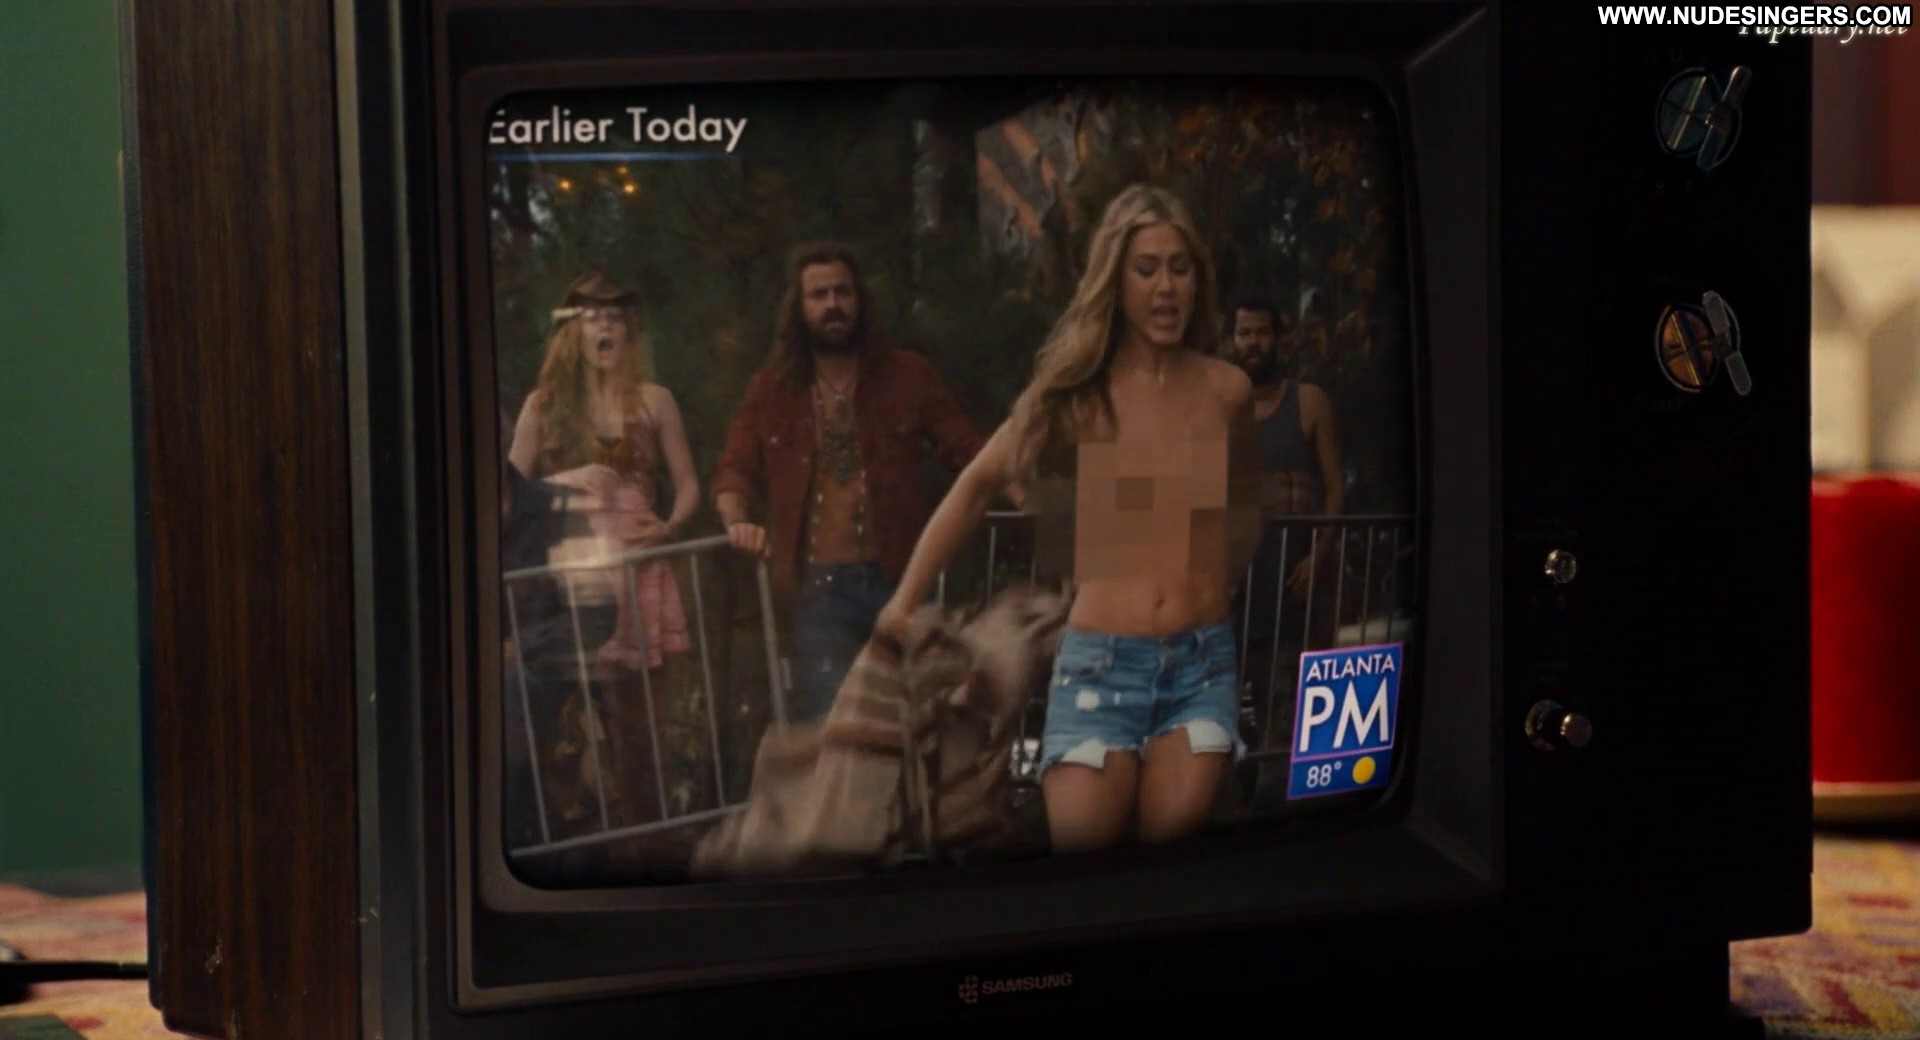 Nude portraits of jennifer aniston, lenny kravitz auctioned off for covid